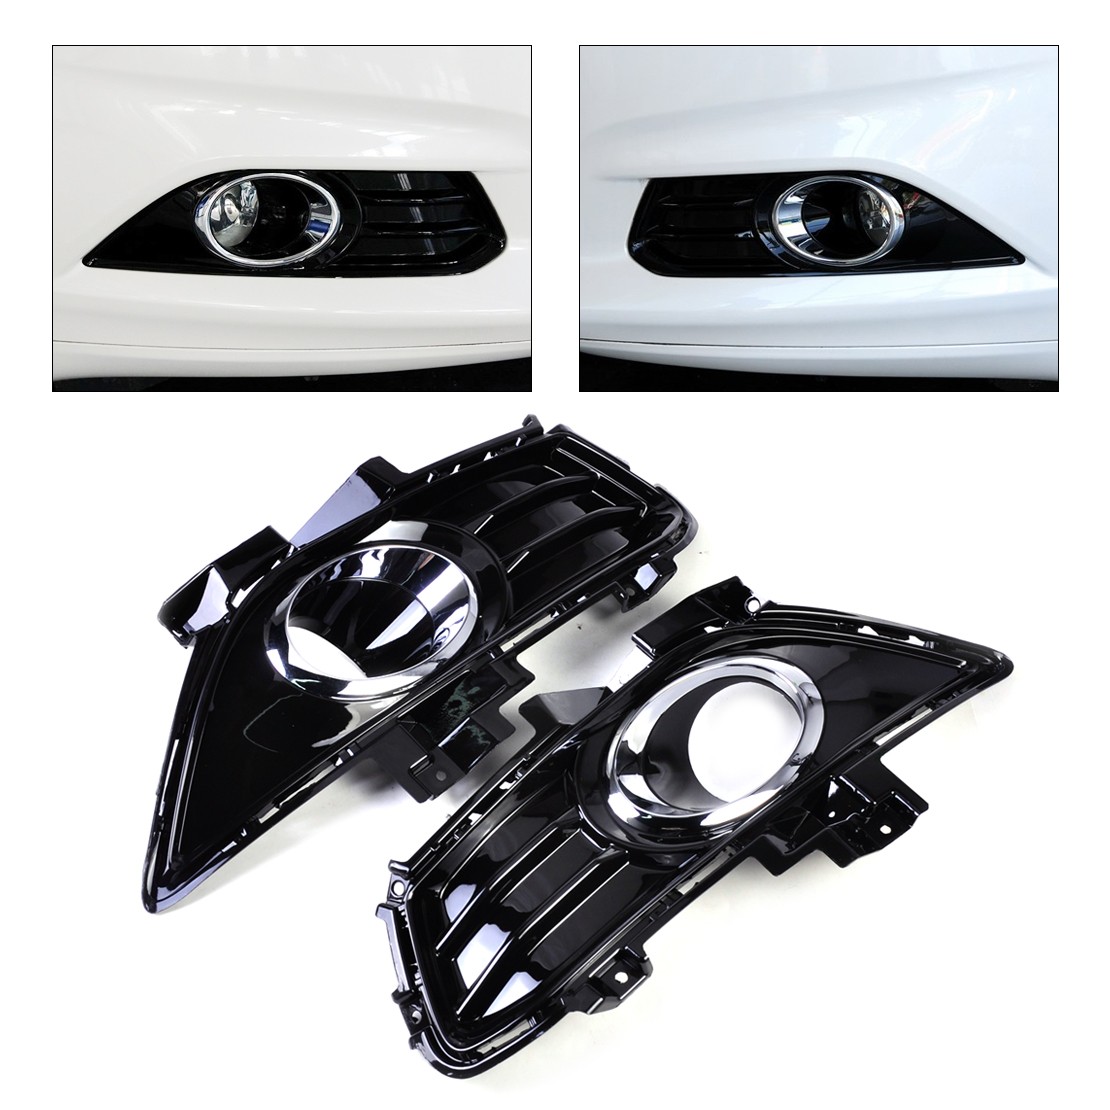 DWCX DS73-19952CAW SL666 Gloss Fog Light Lamp Grill Grille Cover for Ford Fusion / Mondeo 2013 2014 2015 dwcx 2pcs front fog light lamp cover grille grill 2pcs lamp kit for ford fiesta 2014